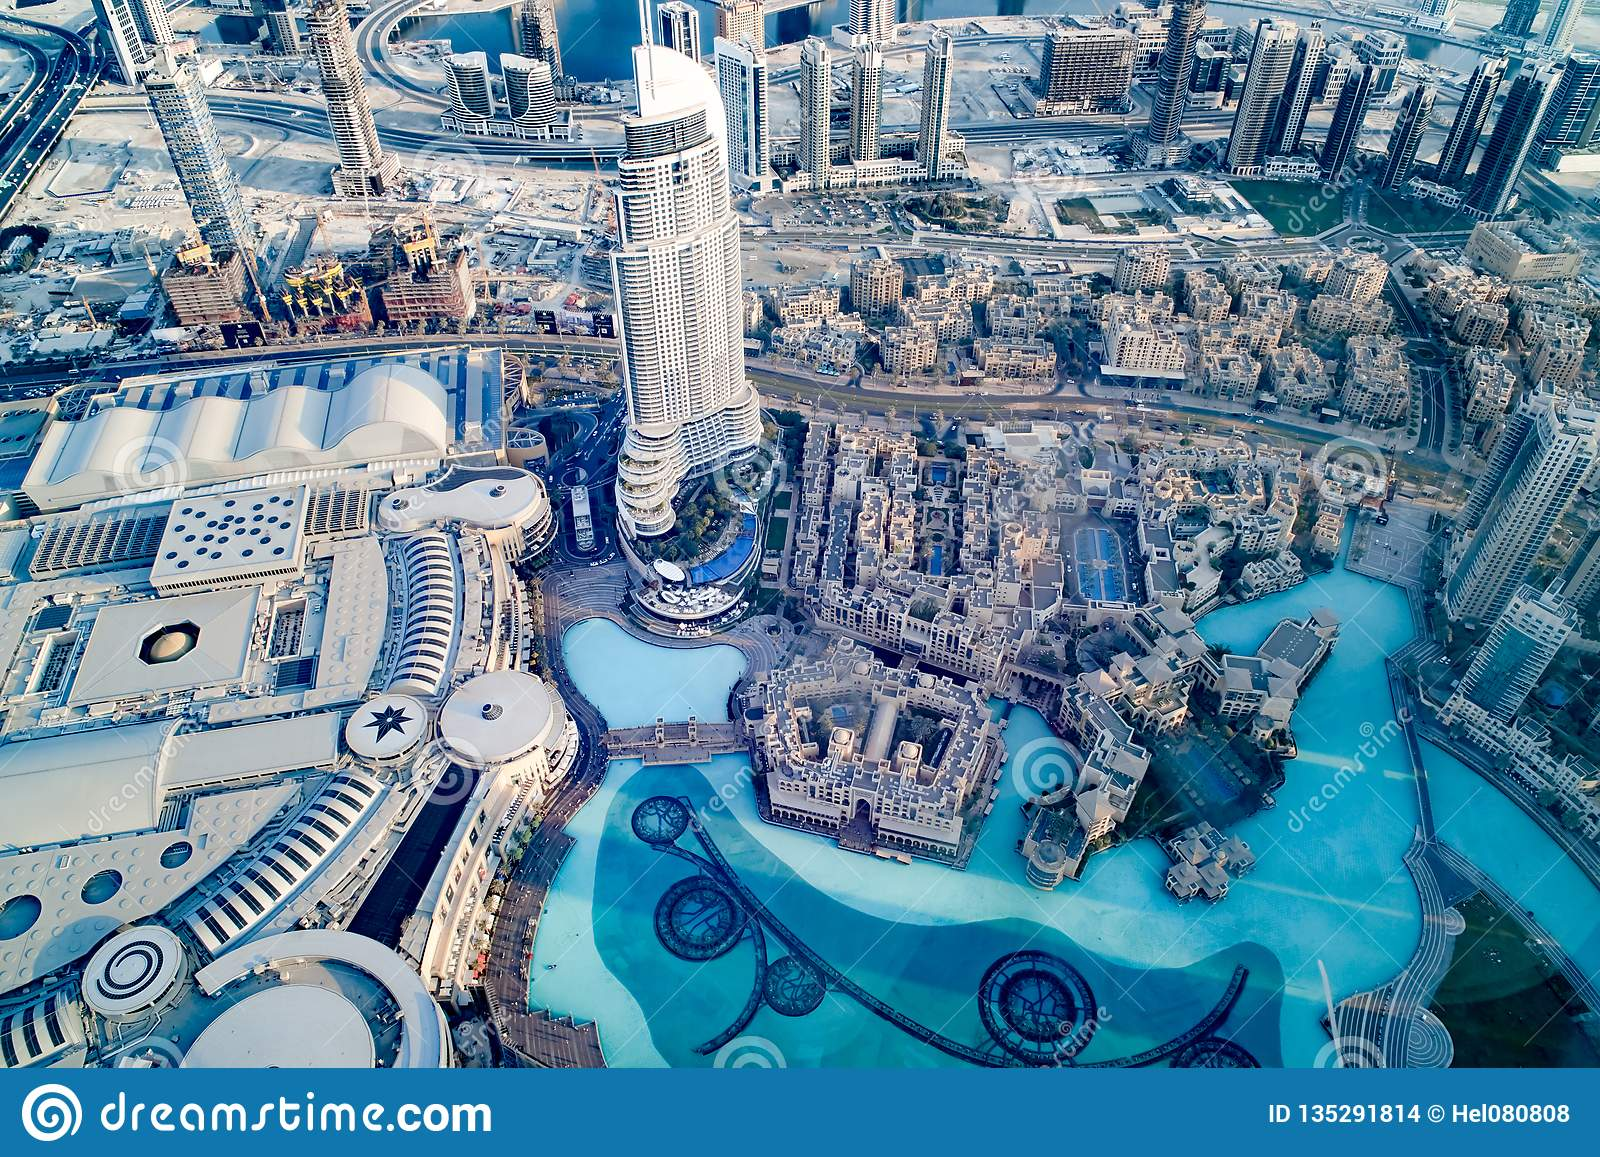 Souk Al Bahar And Downtown Dubai With Shopping Mall And